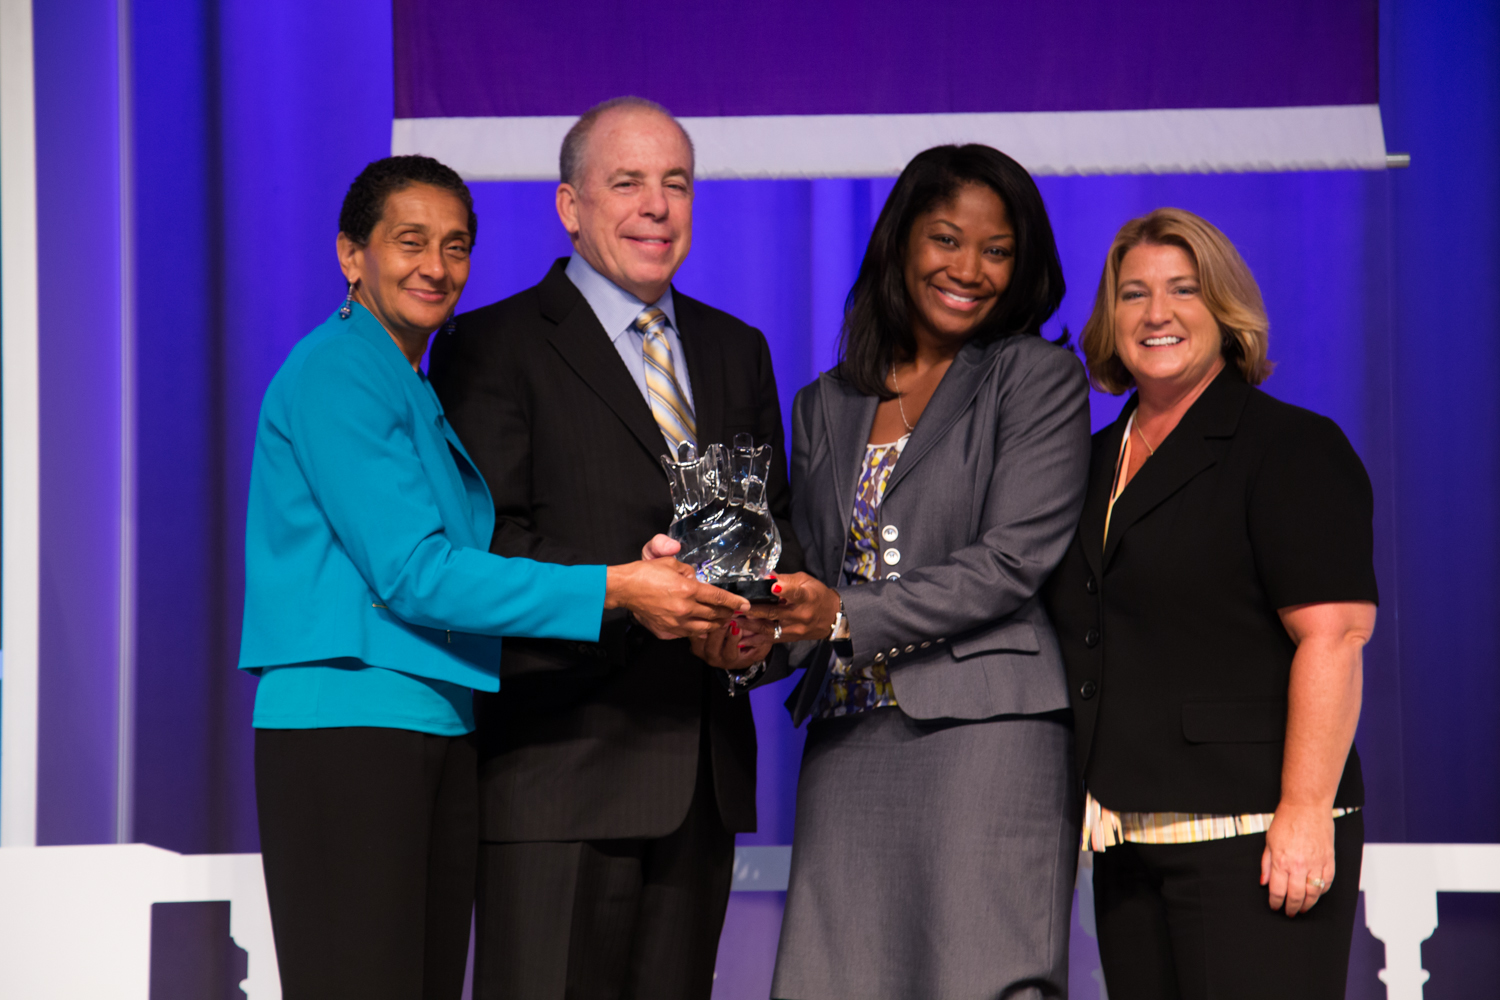 Presenting the Applause Award     Left to Right: Benita Fortner, Chair WBENCBoard; Larry Caldwell, VP IT & CorporateServices Procurement, PepsiCo; Eyvon Austin,Global Supplier Diversity Director, The Coca-Cola Company; Pamela Prince-Eason,President & CEO, WBENC